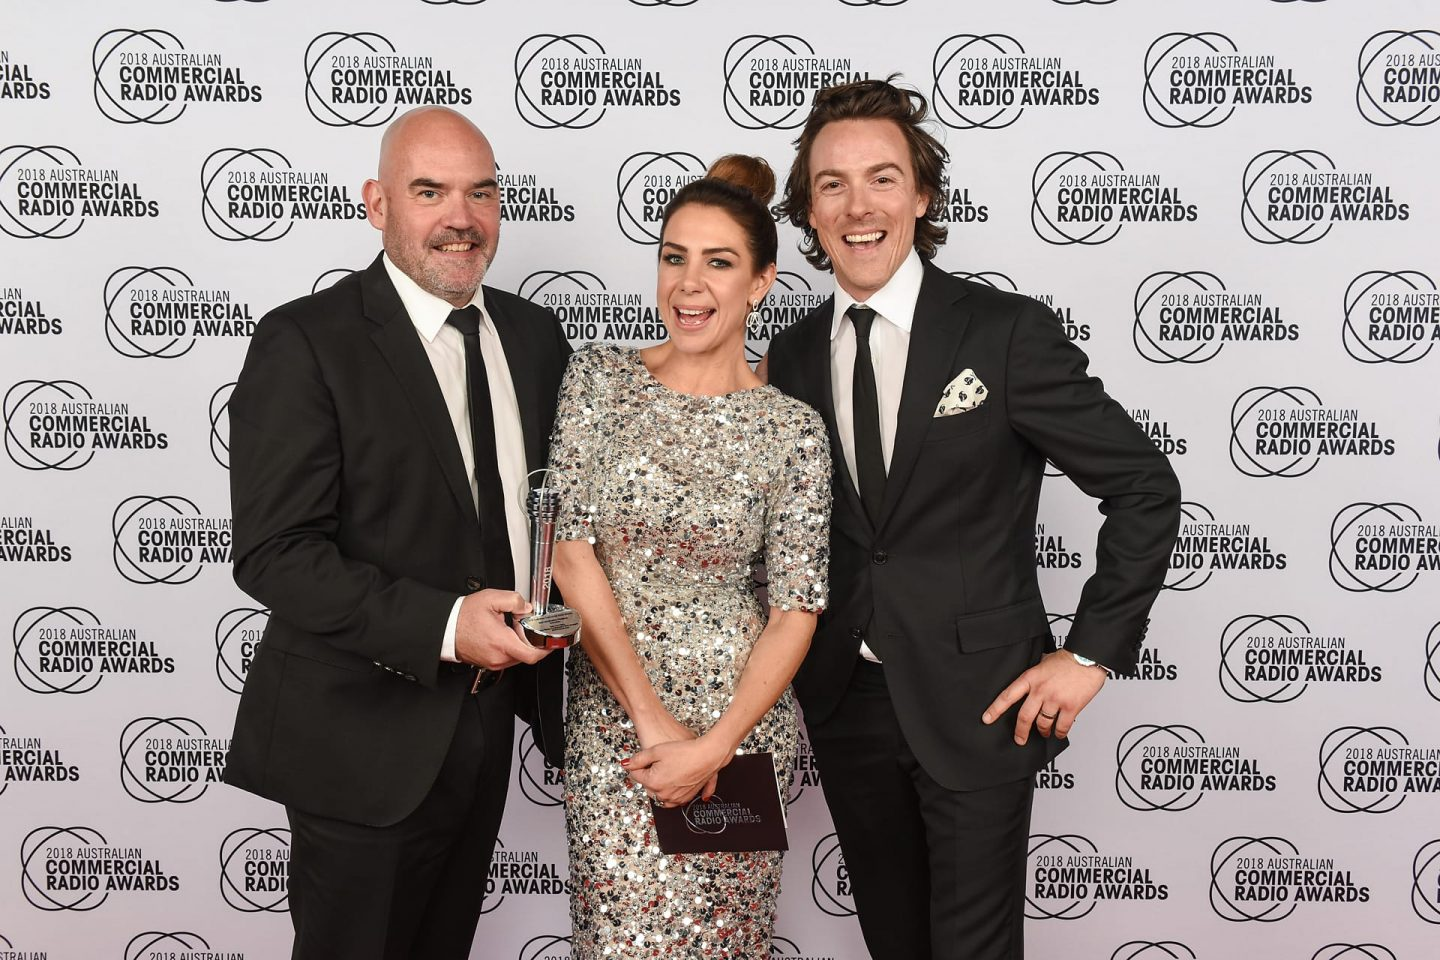 Kate Tim and Marty at the Commercial Radio Awards event